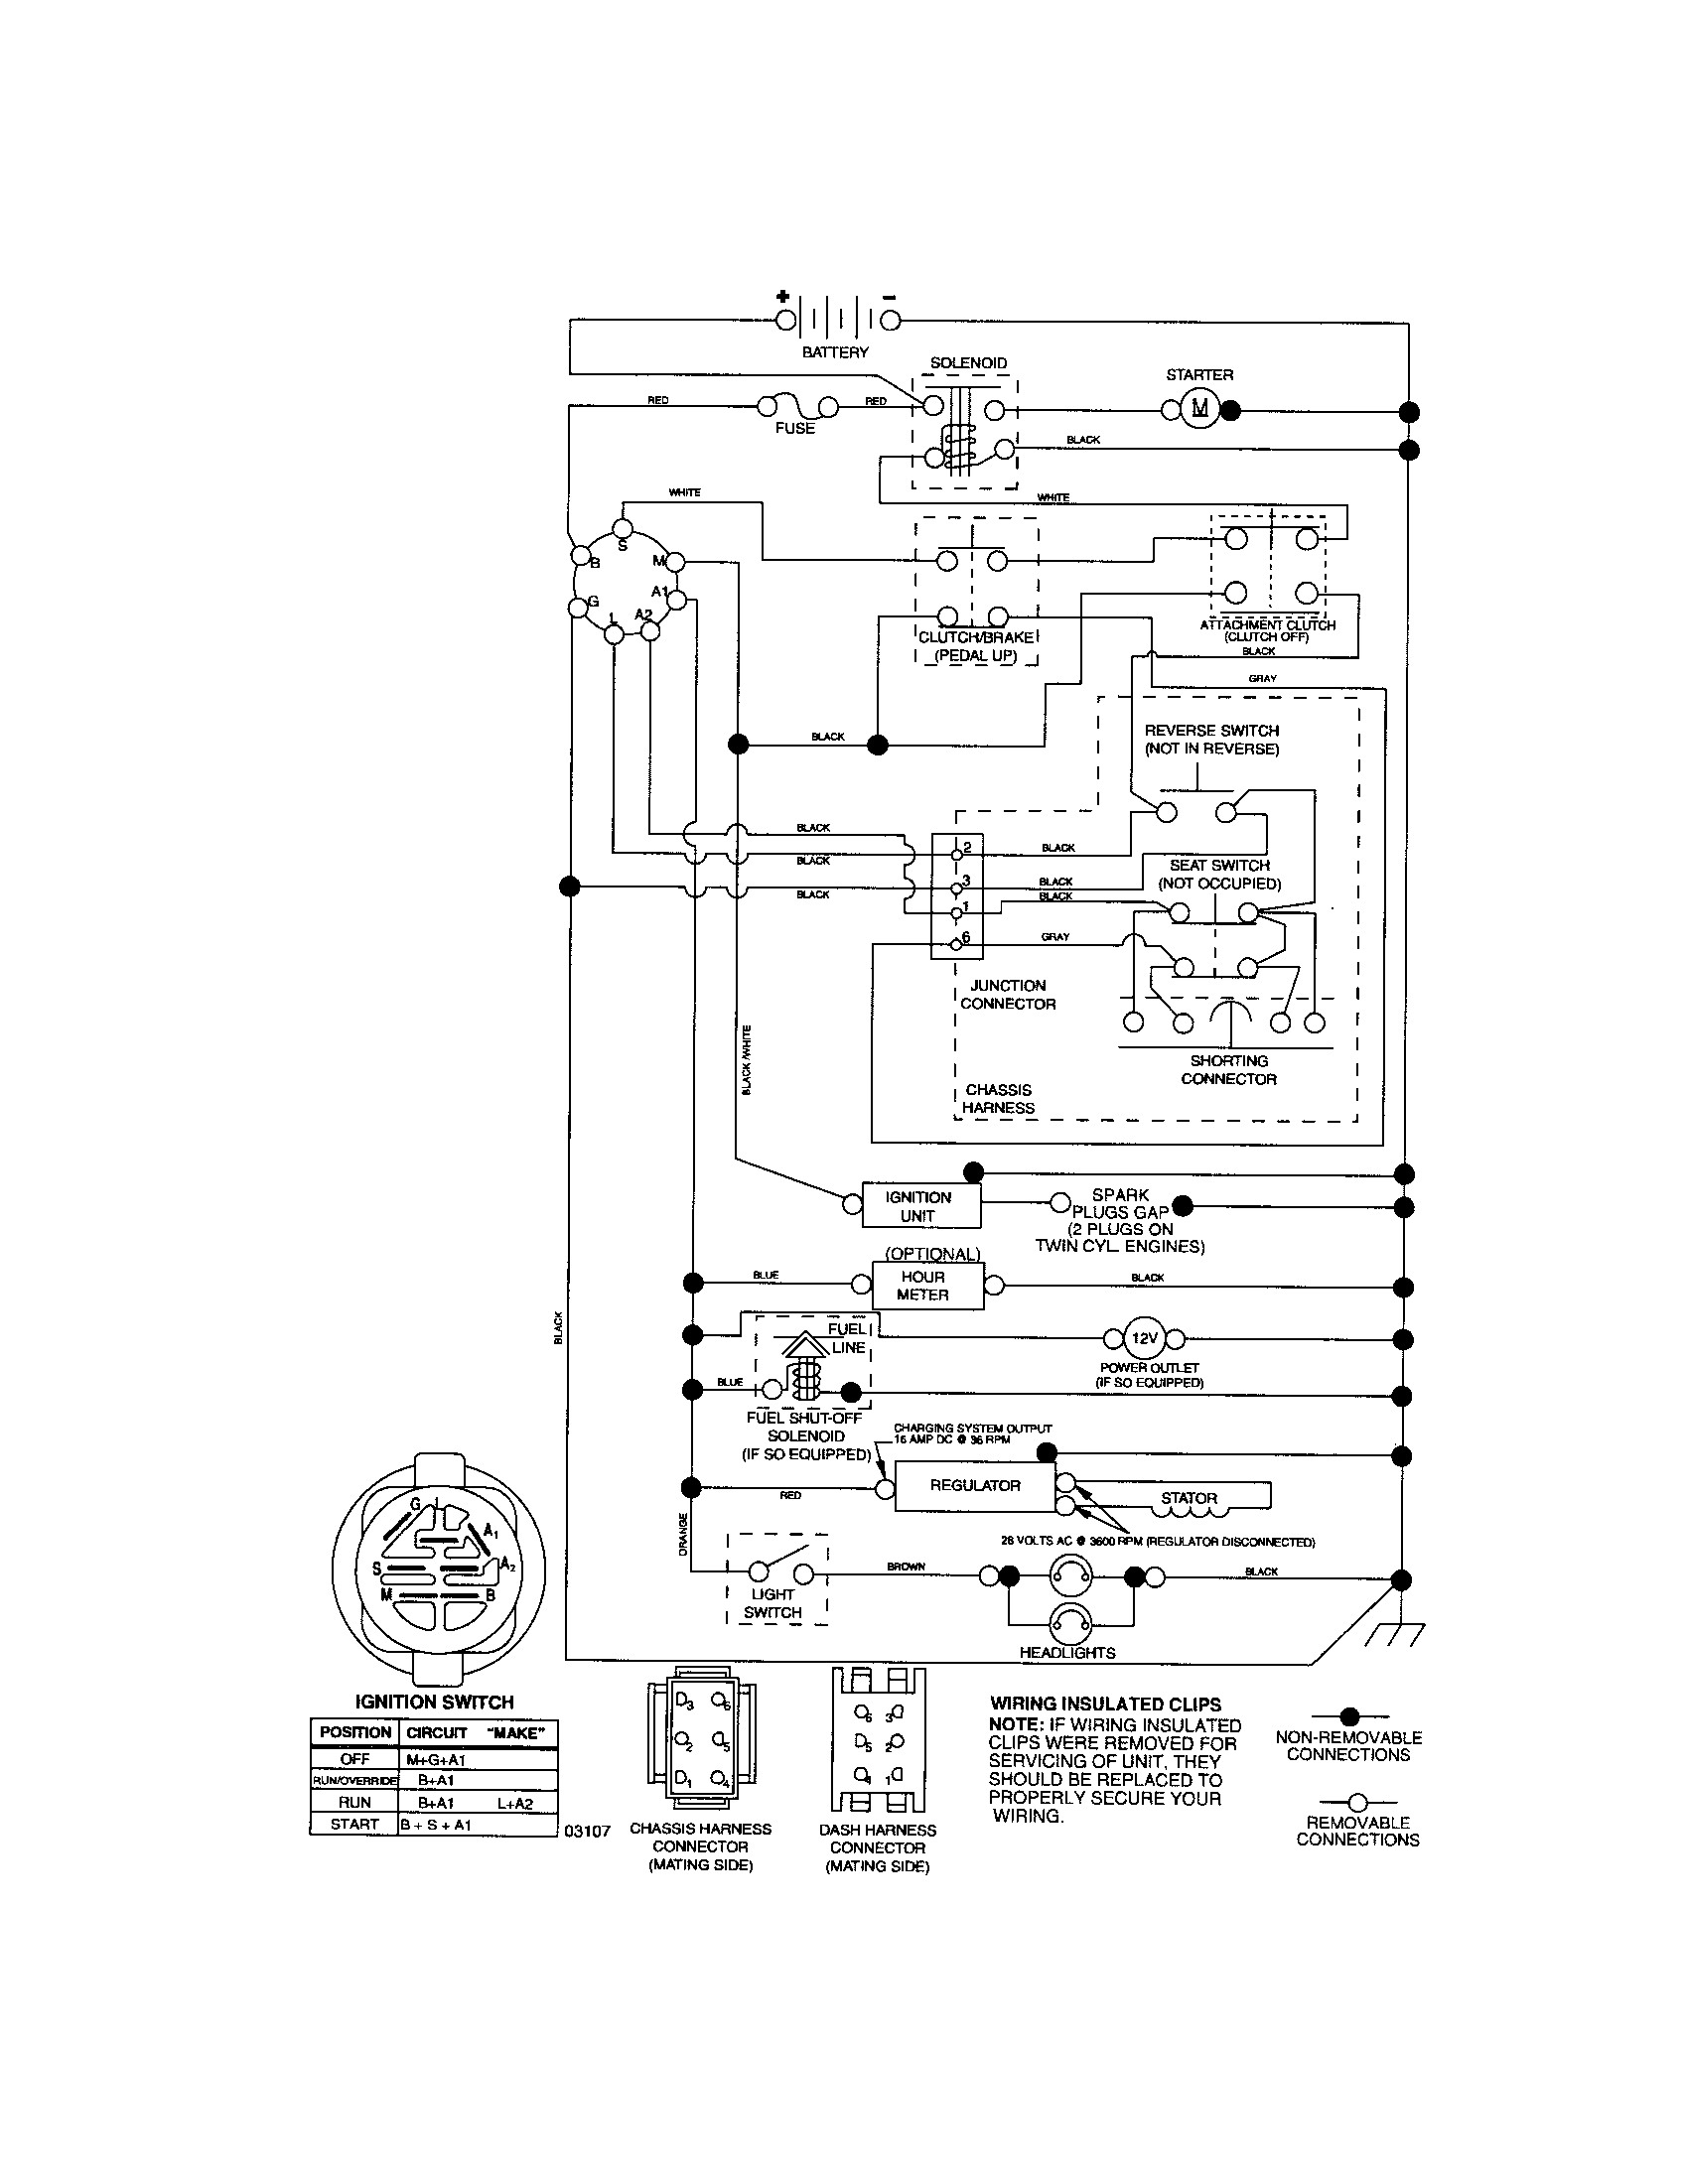 riding lawn mower ignition switch wiring diagram Collection-Lawn Mower Ignition Switch Wiring Diagram New Ignition Switch Wiring Diagrams Ac Schematic Diagram New Lawn 8-s